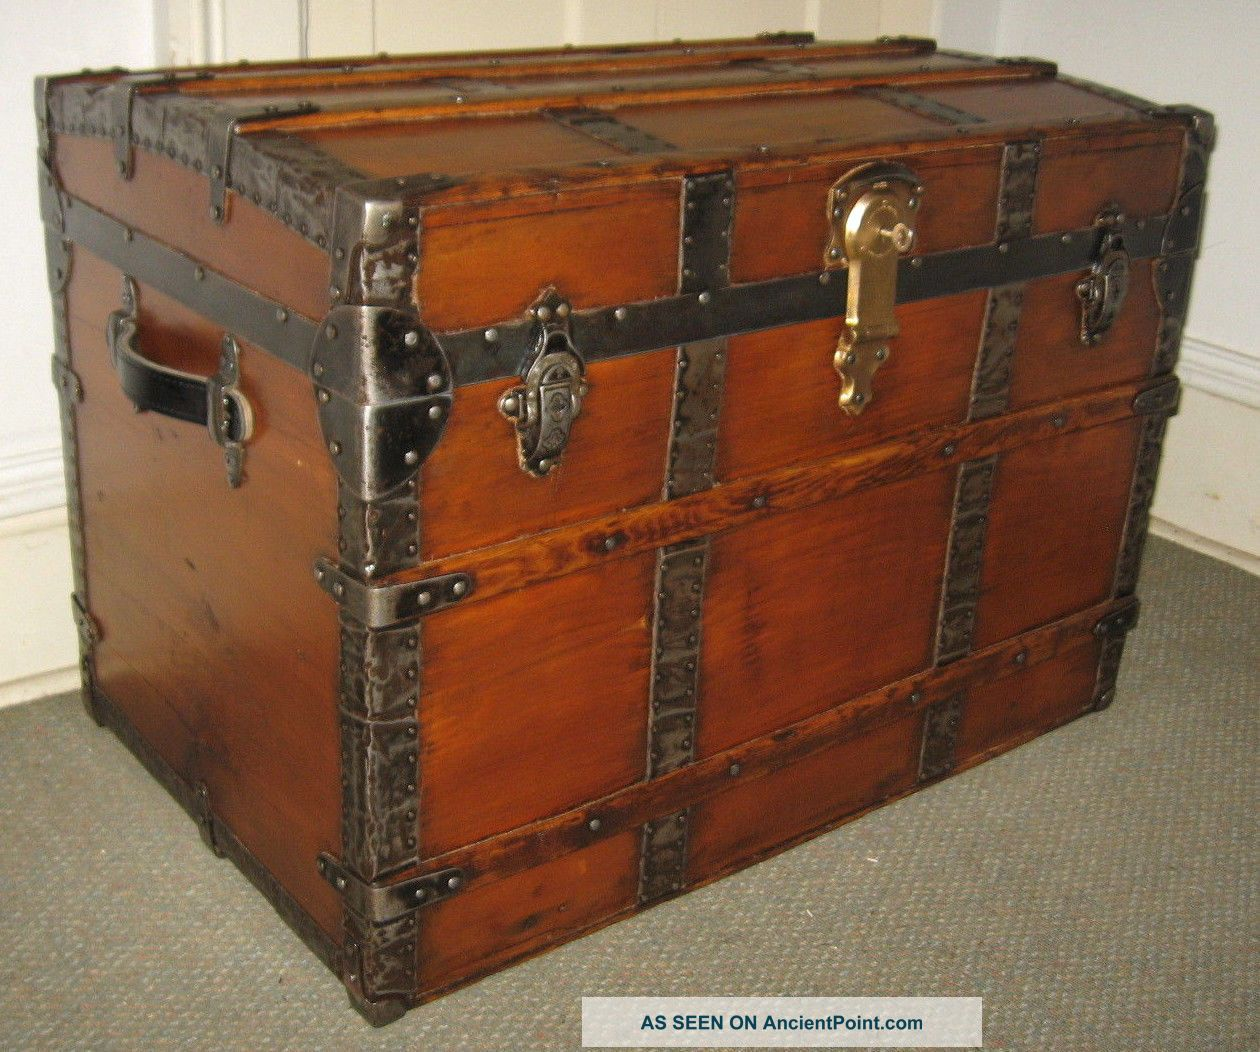 Antique Steamer Trunk Vintage Victorian Flat Top Old Wooden Travel Chest C1890 1800-1899 photo